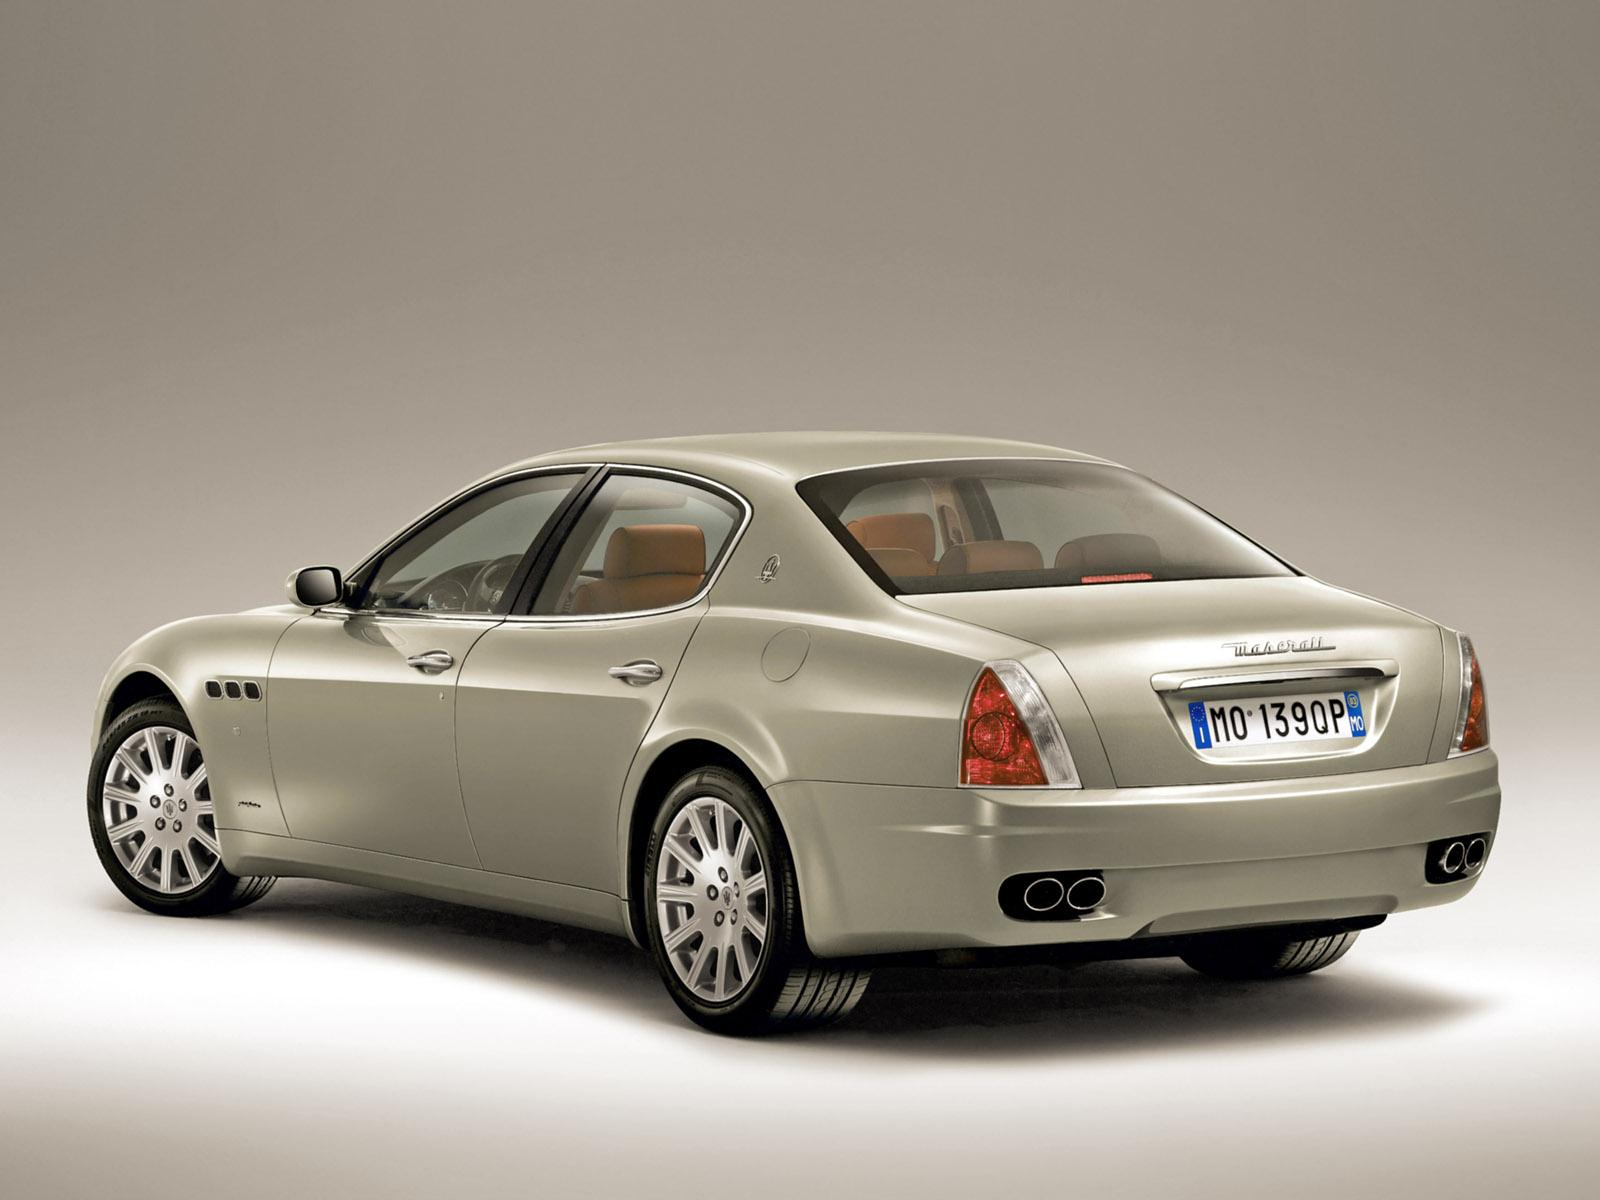 2008 maserati quattroporte news and information. Black Bedroom Furniture Sets. Home Design Ideas